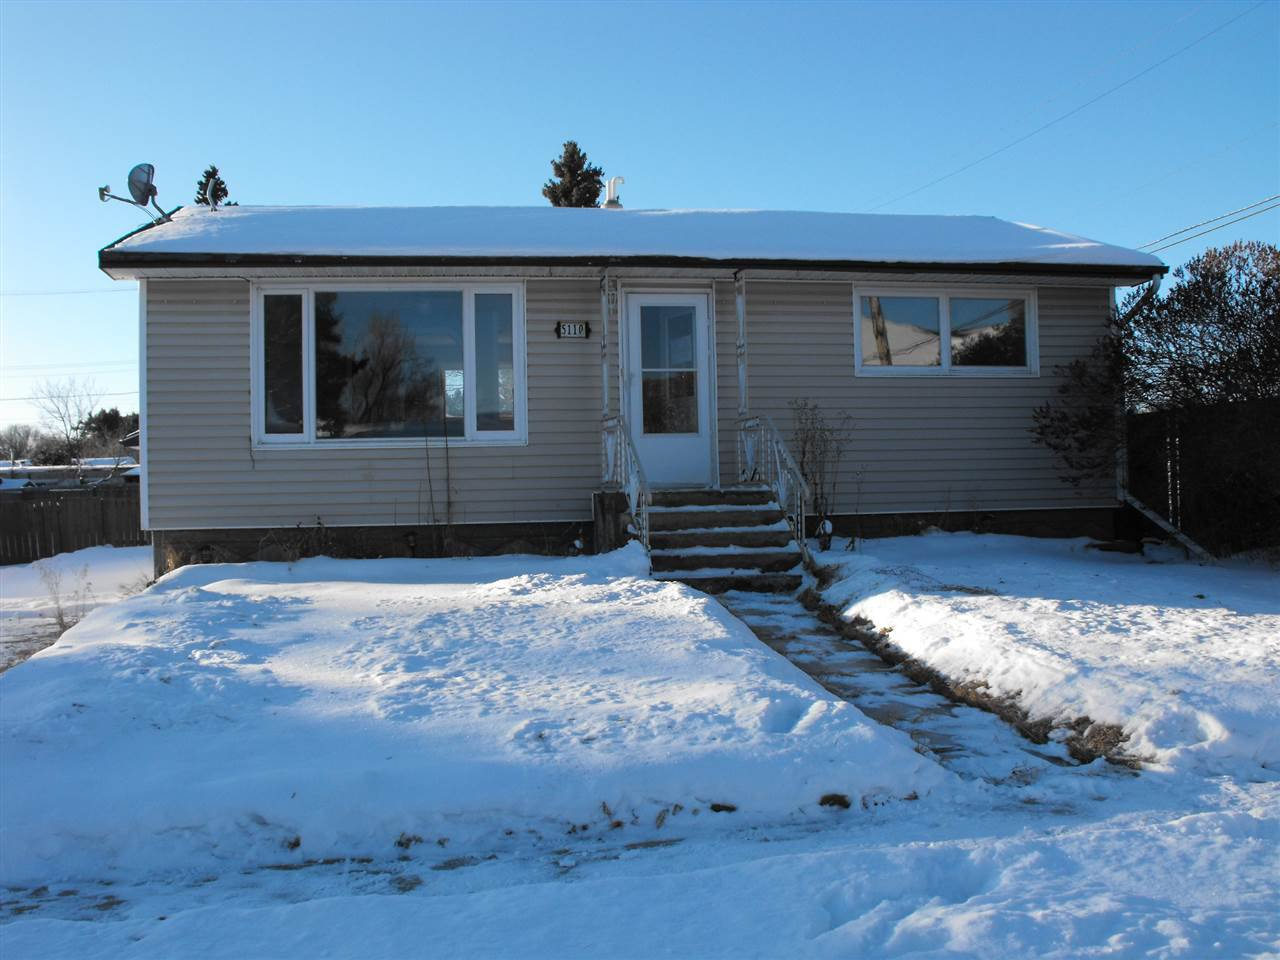 Main Photo: 5110 50 Street: Elk Point House for sale : MLS®# E4185411